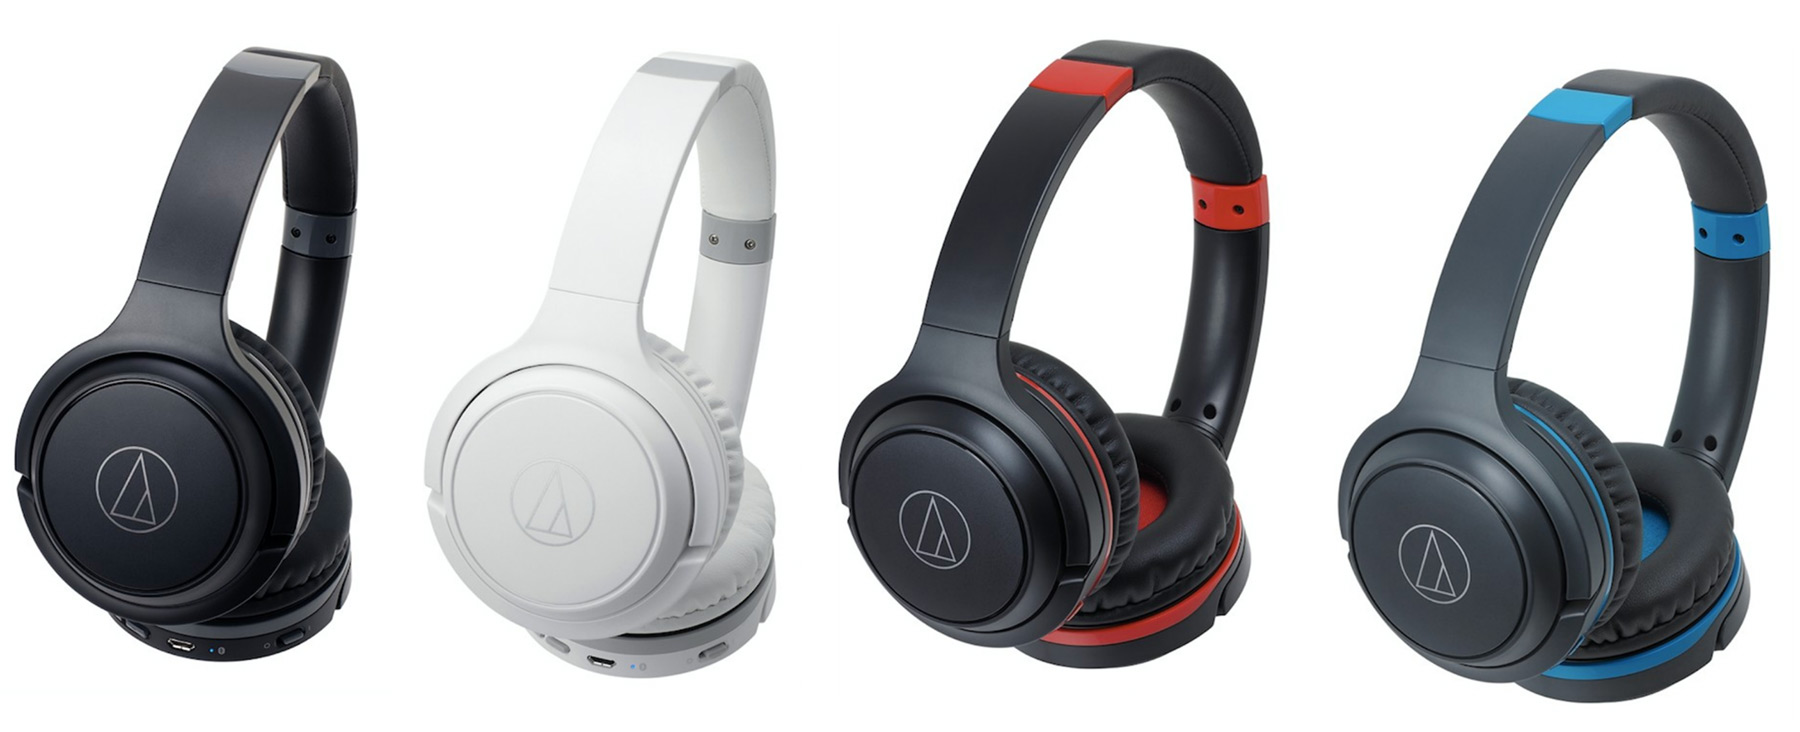 Tai nghe bluetooth Audio Technica ATH-S200BTRD